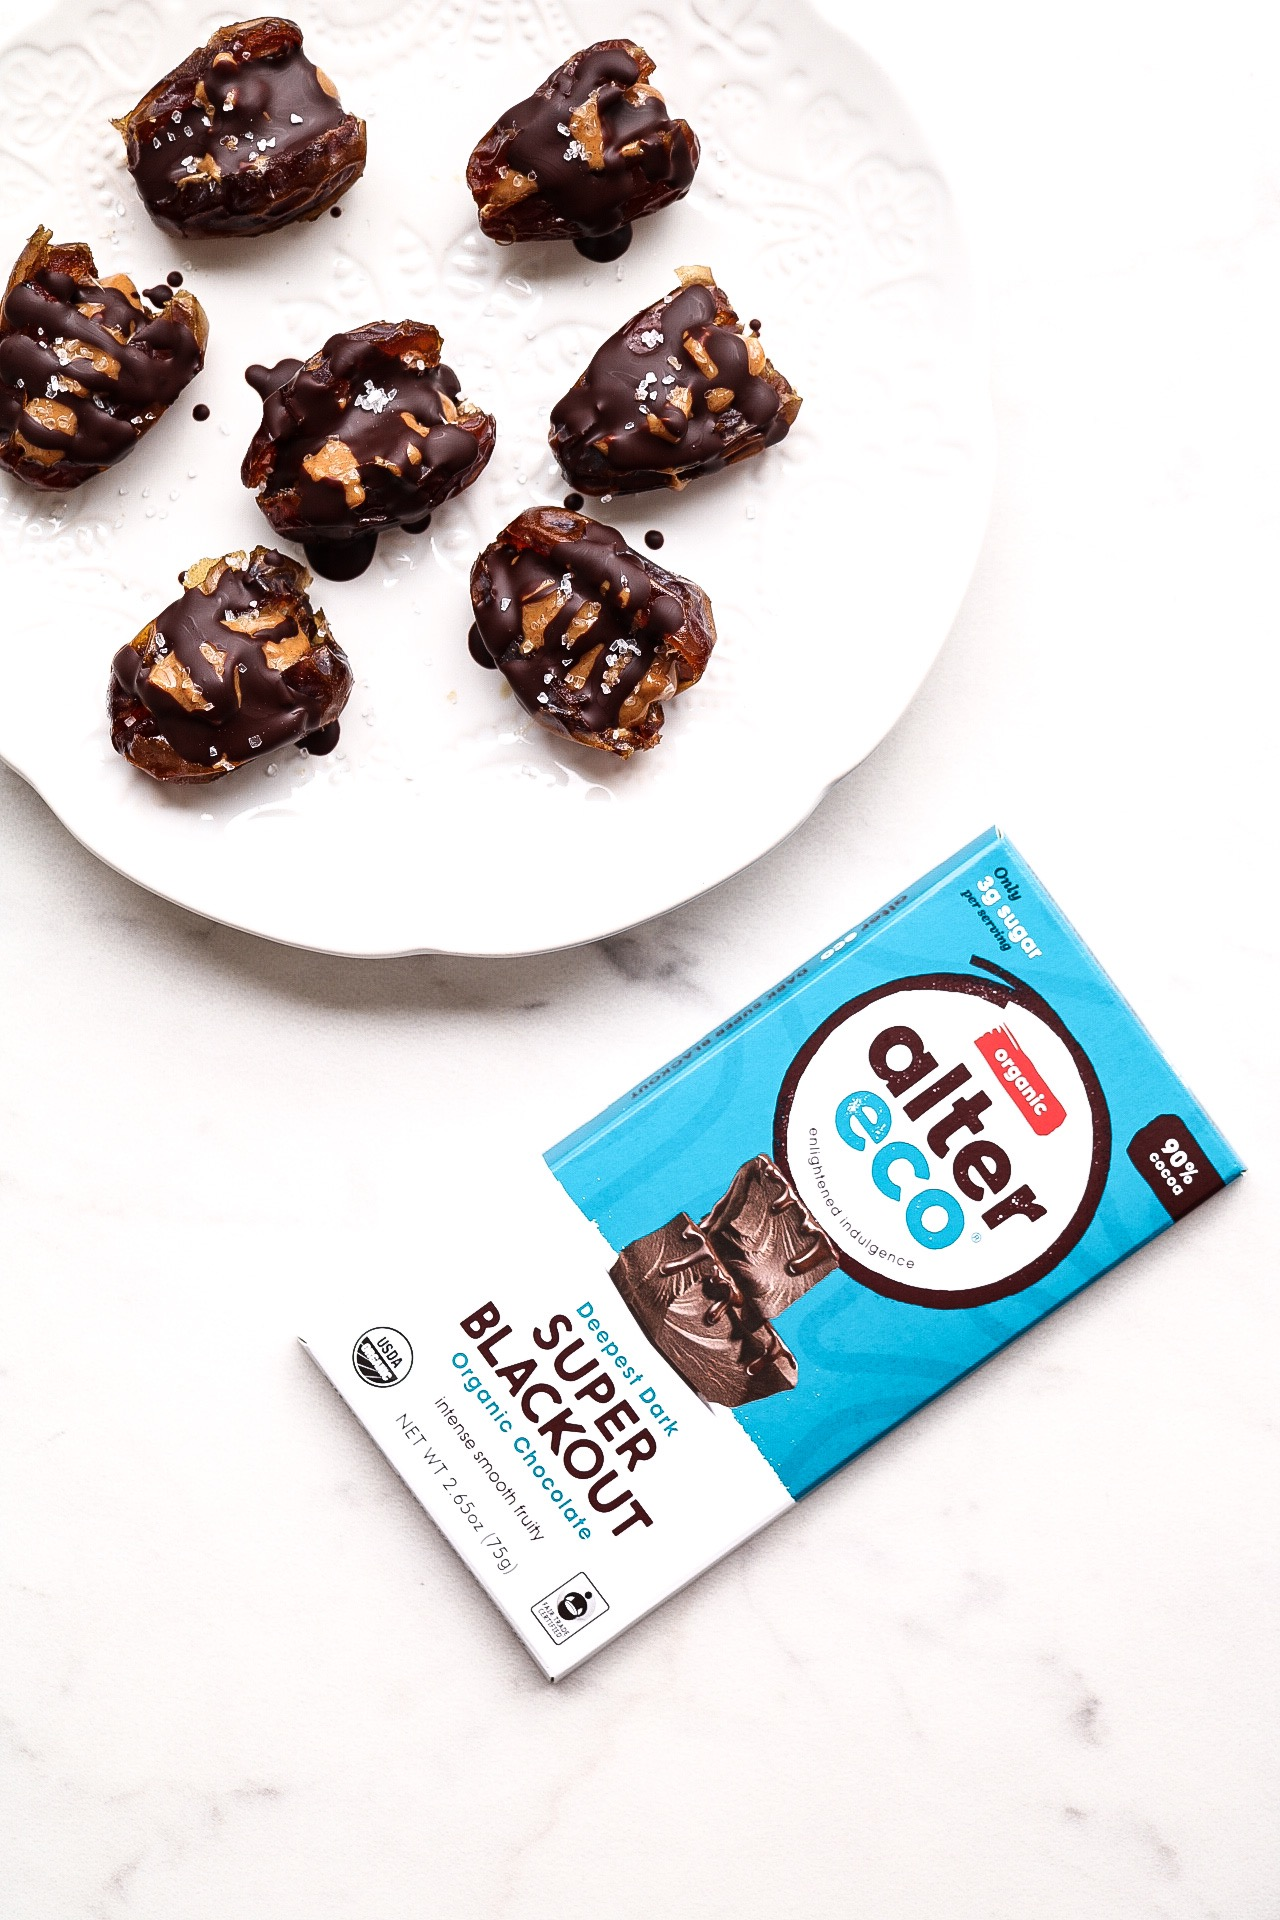 The perfect chocolate to pair with these stuffed dates! Since dates are so naturally sweet, it's a nice balance to have a super dark chocolate as well as the salty peanut butter.